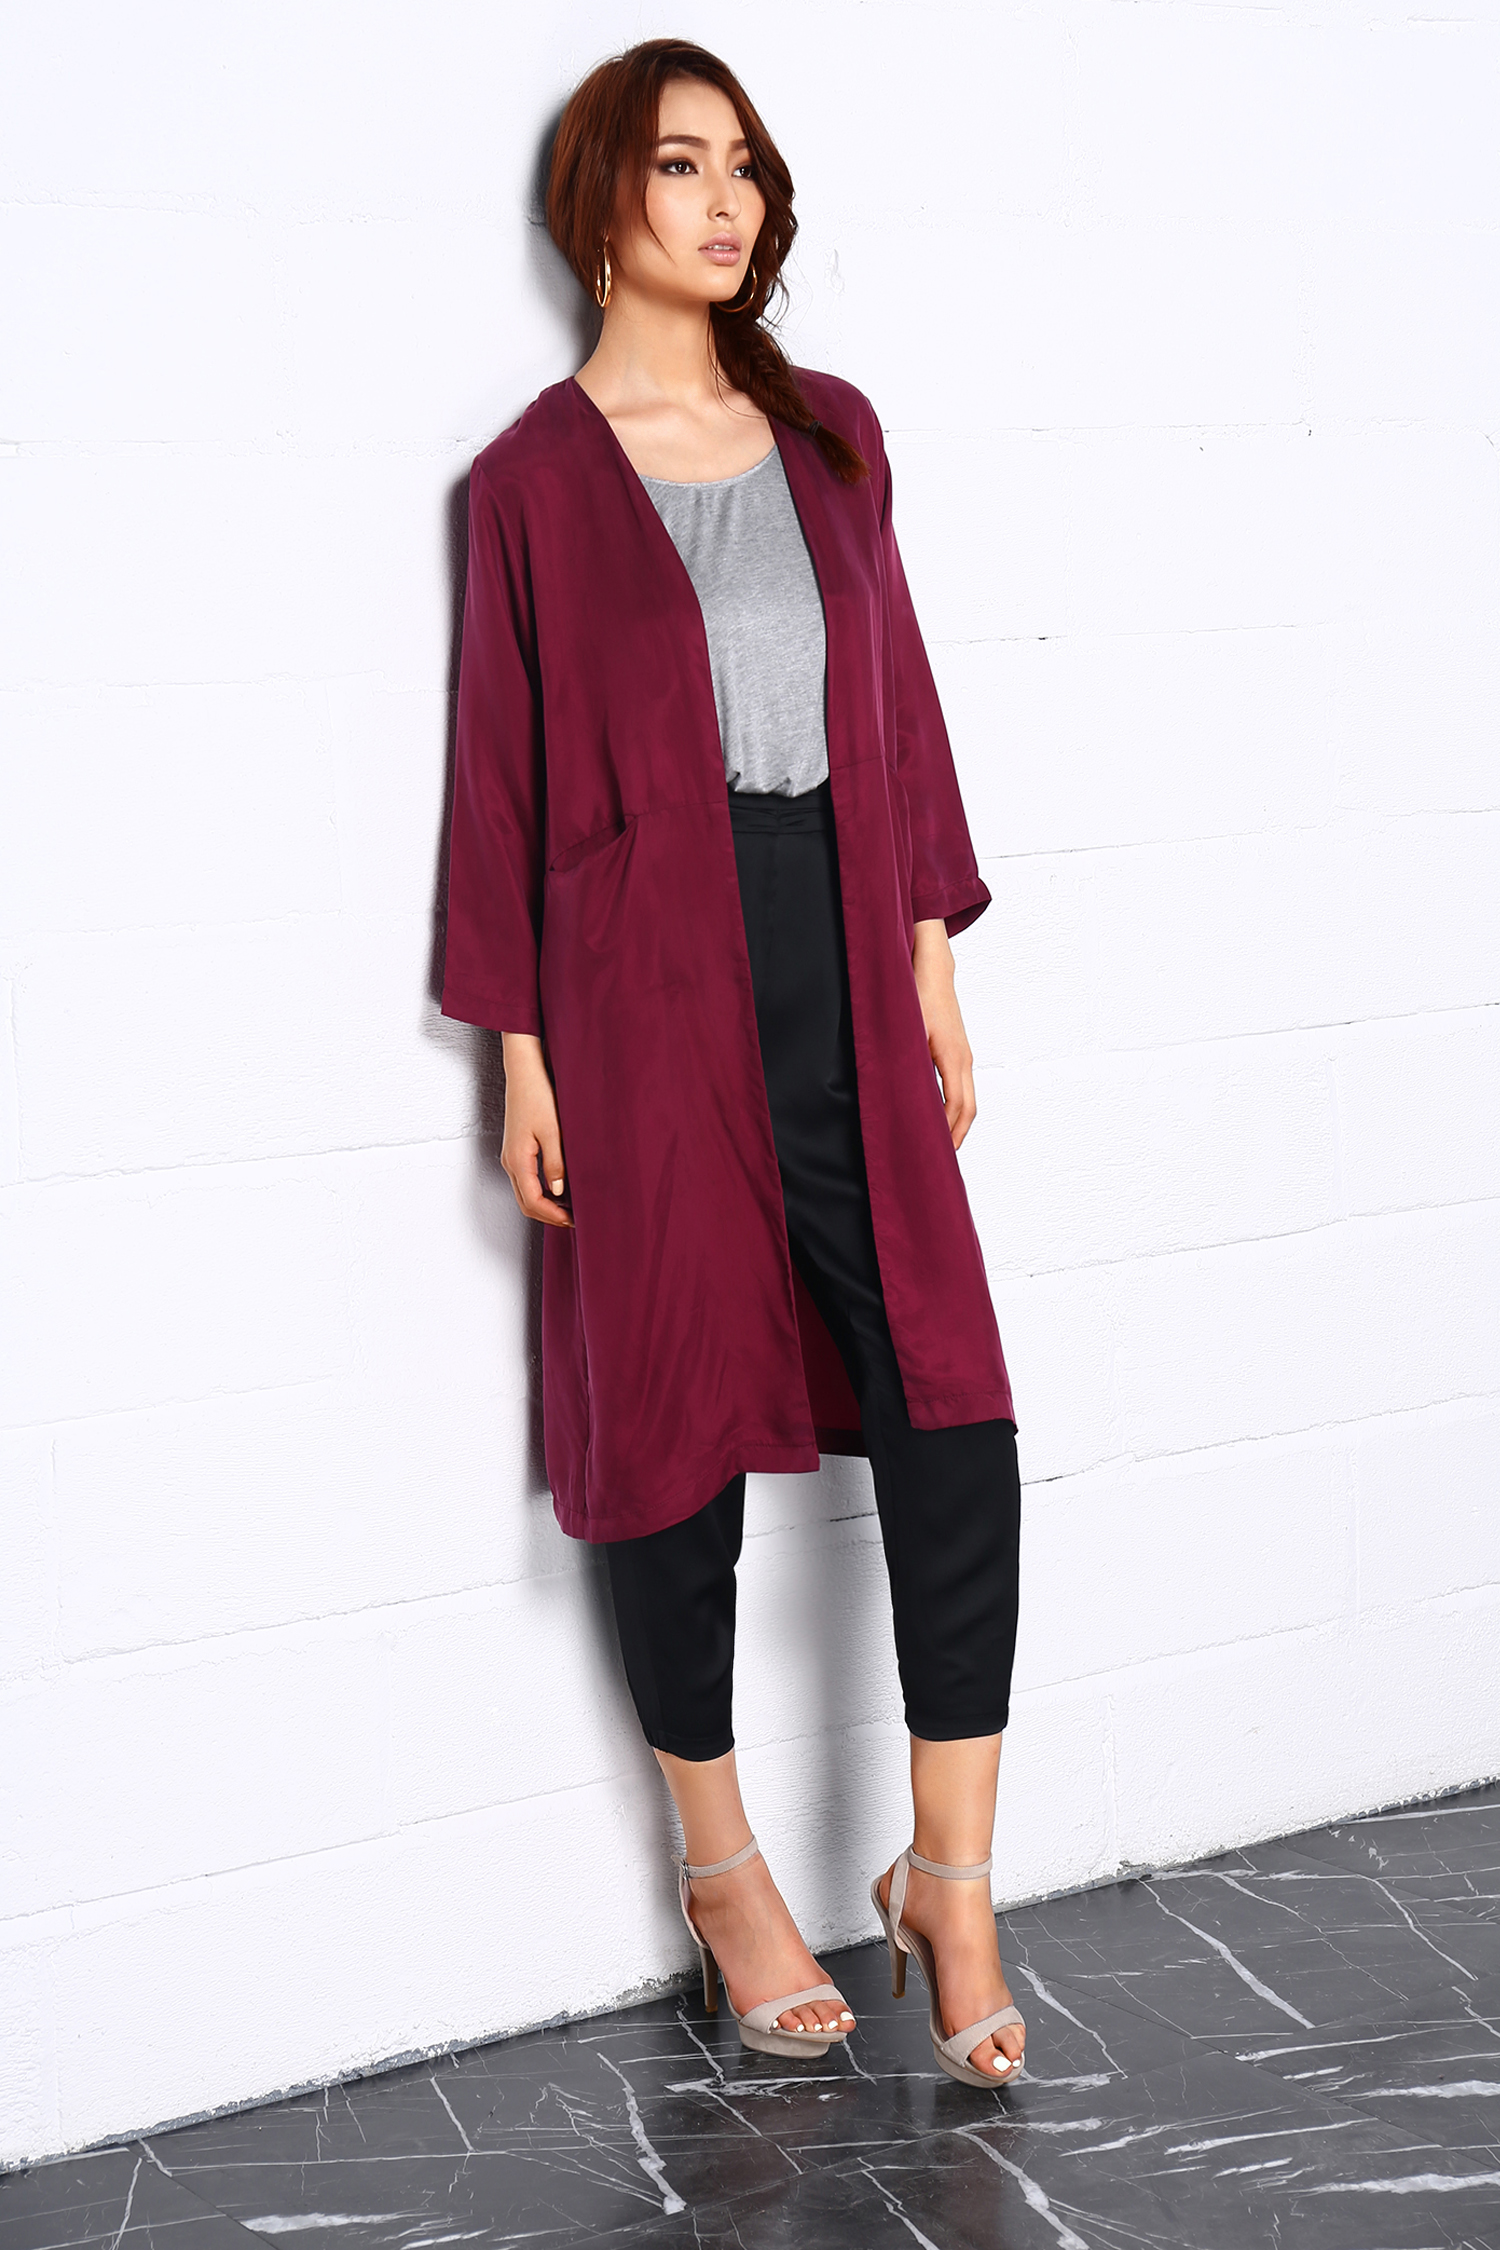 Travelle Style Fall Fashion Fabrics Lagerose Hong Kong Red Duster Coat